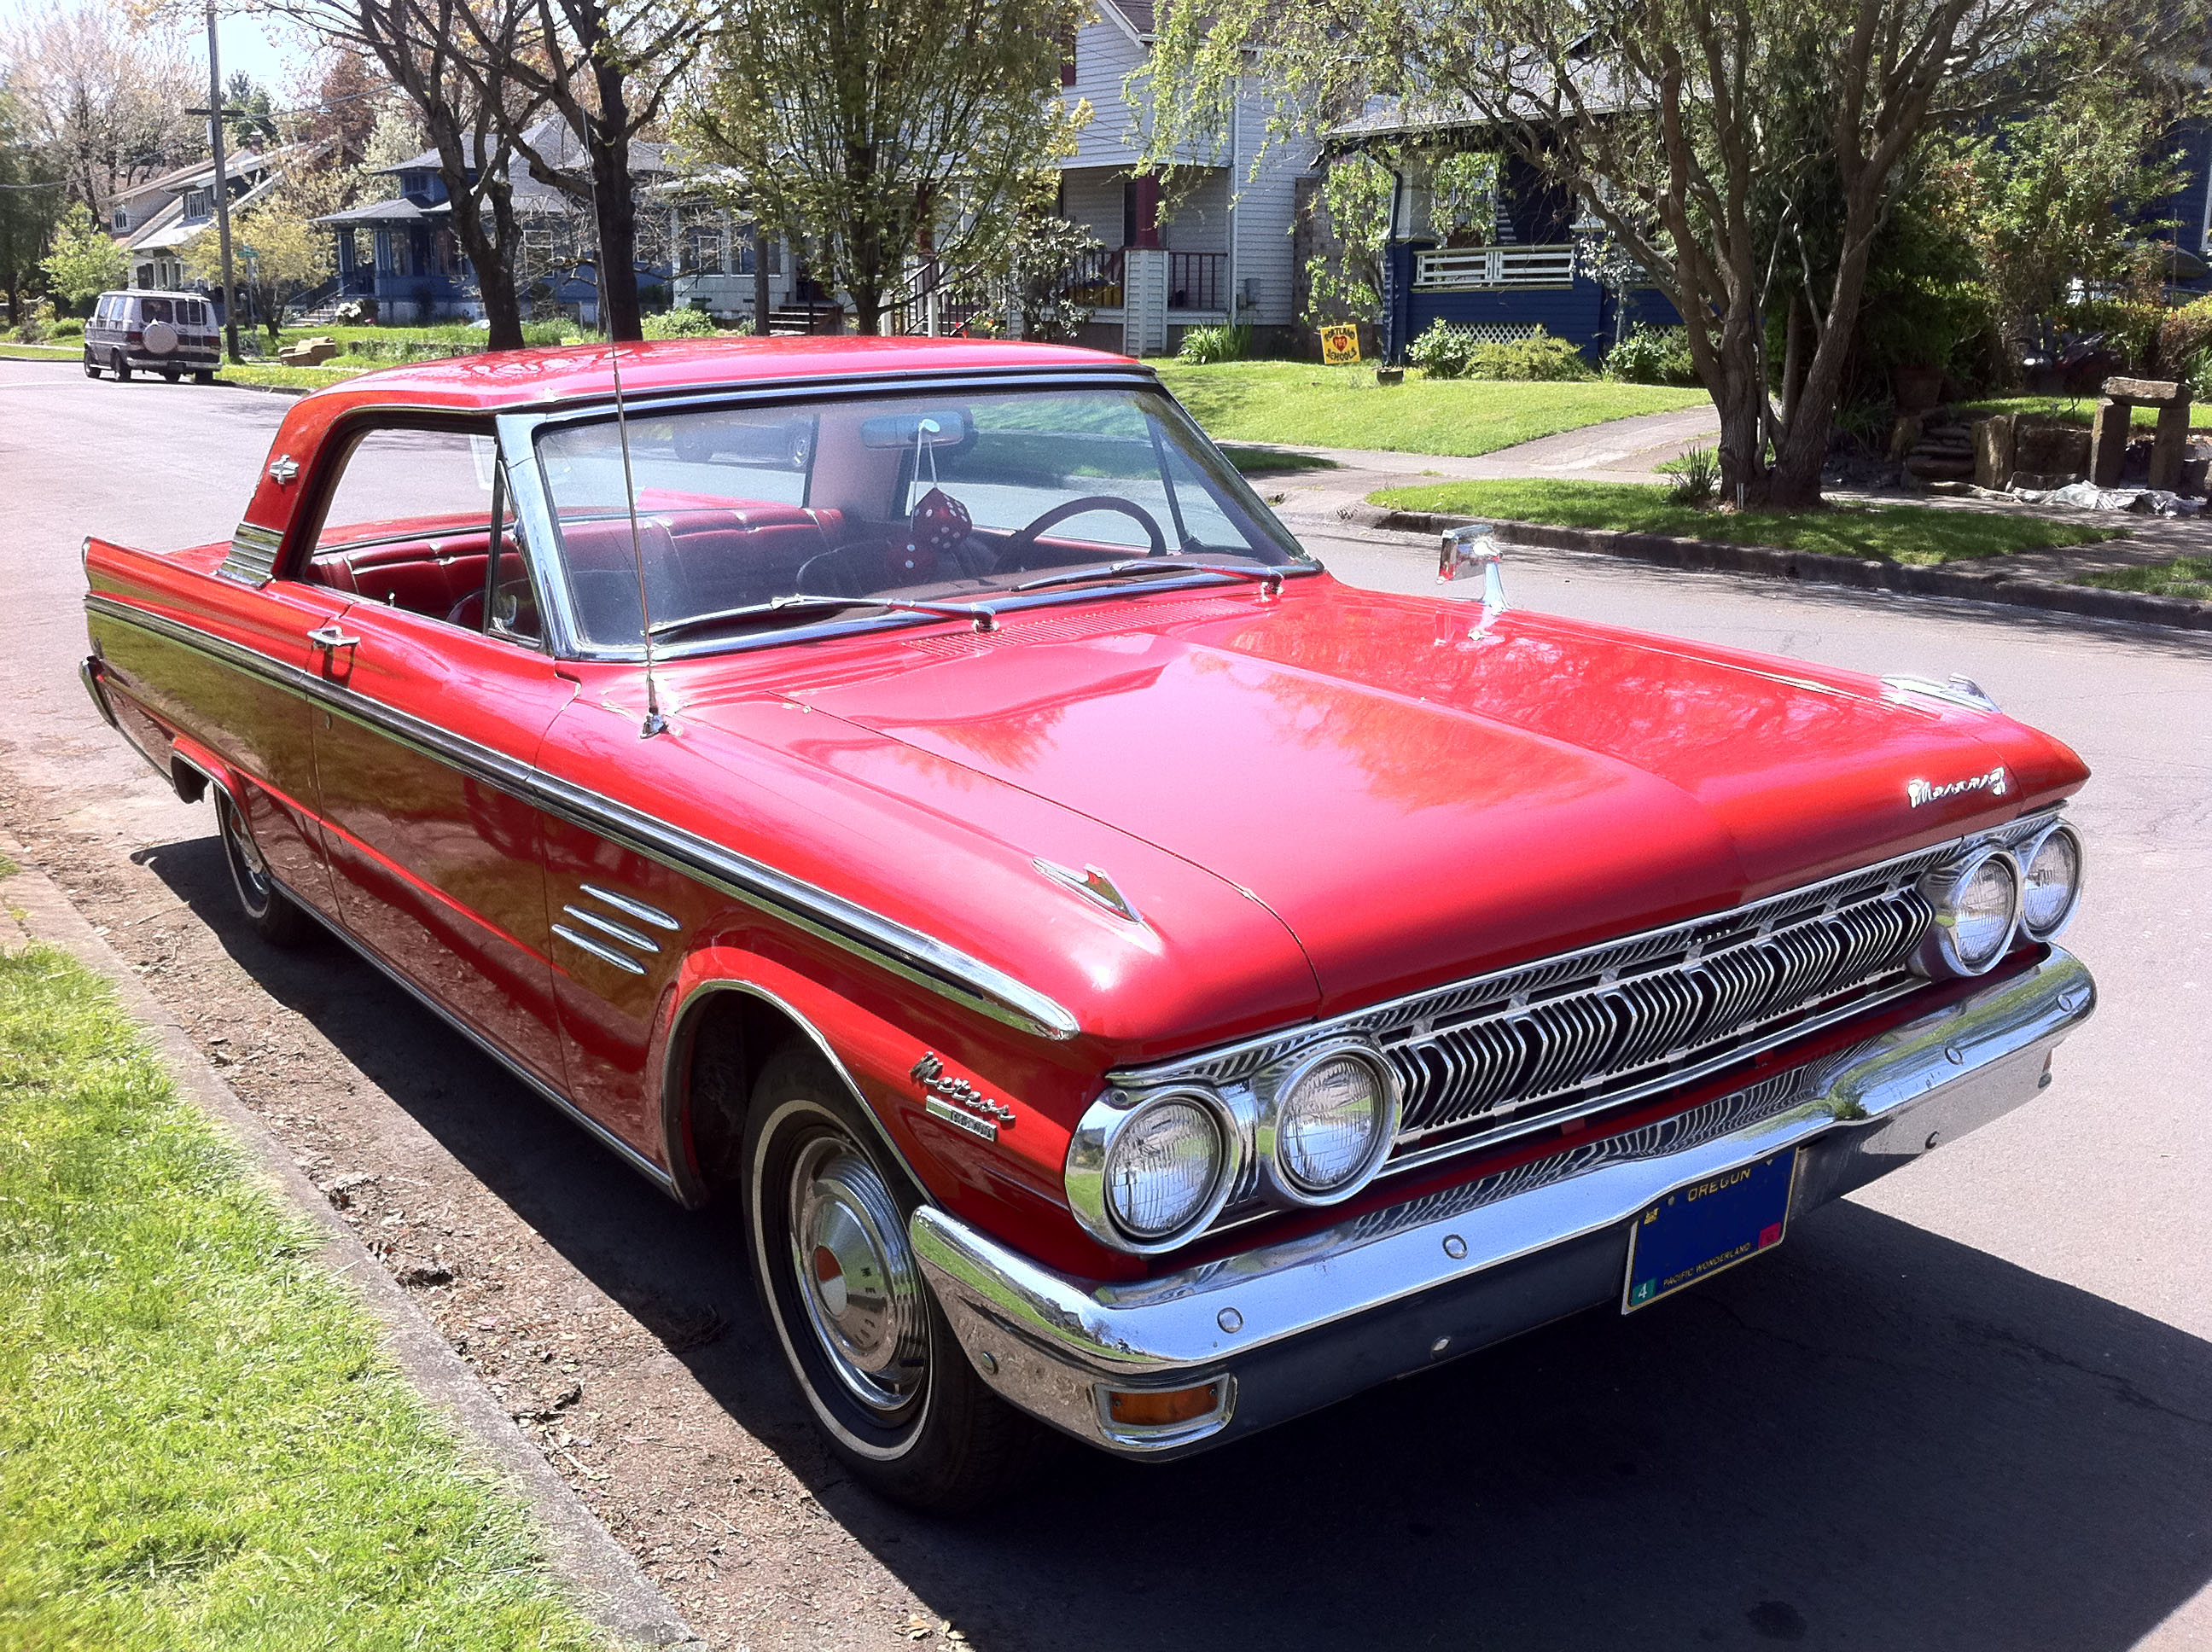 63 Mercury Meteor for Sale http://commons.wikimedia.org/wiki/File:63_Mercury_Meteor_S33-2.jpg